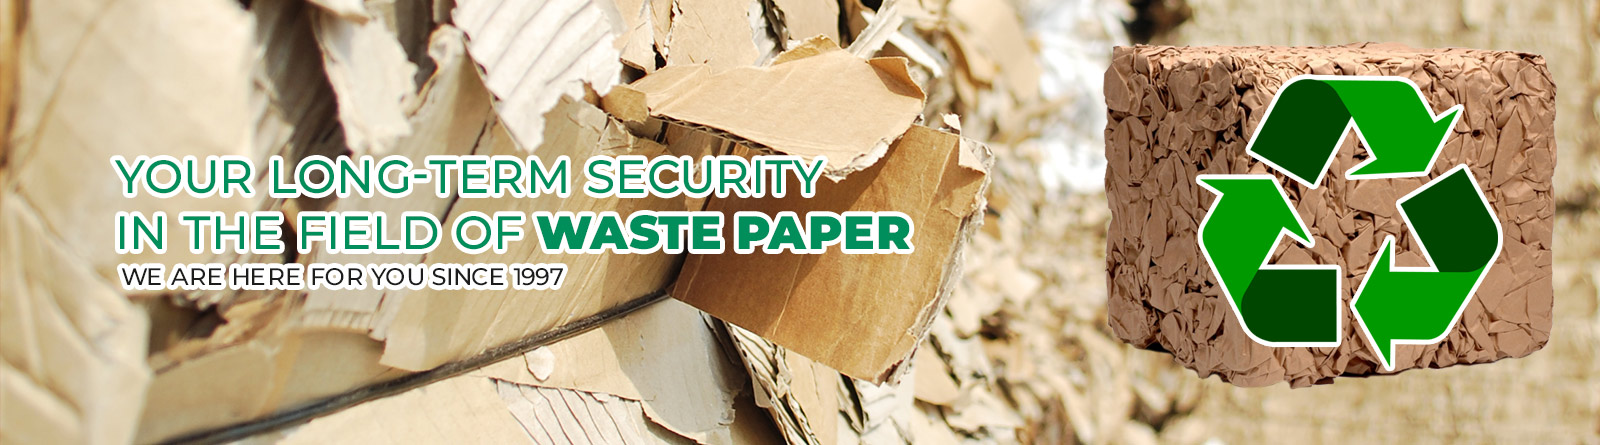 EURO WASTE, s.r.o. - Your stable recovery paper supplier